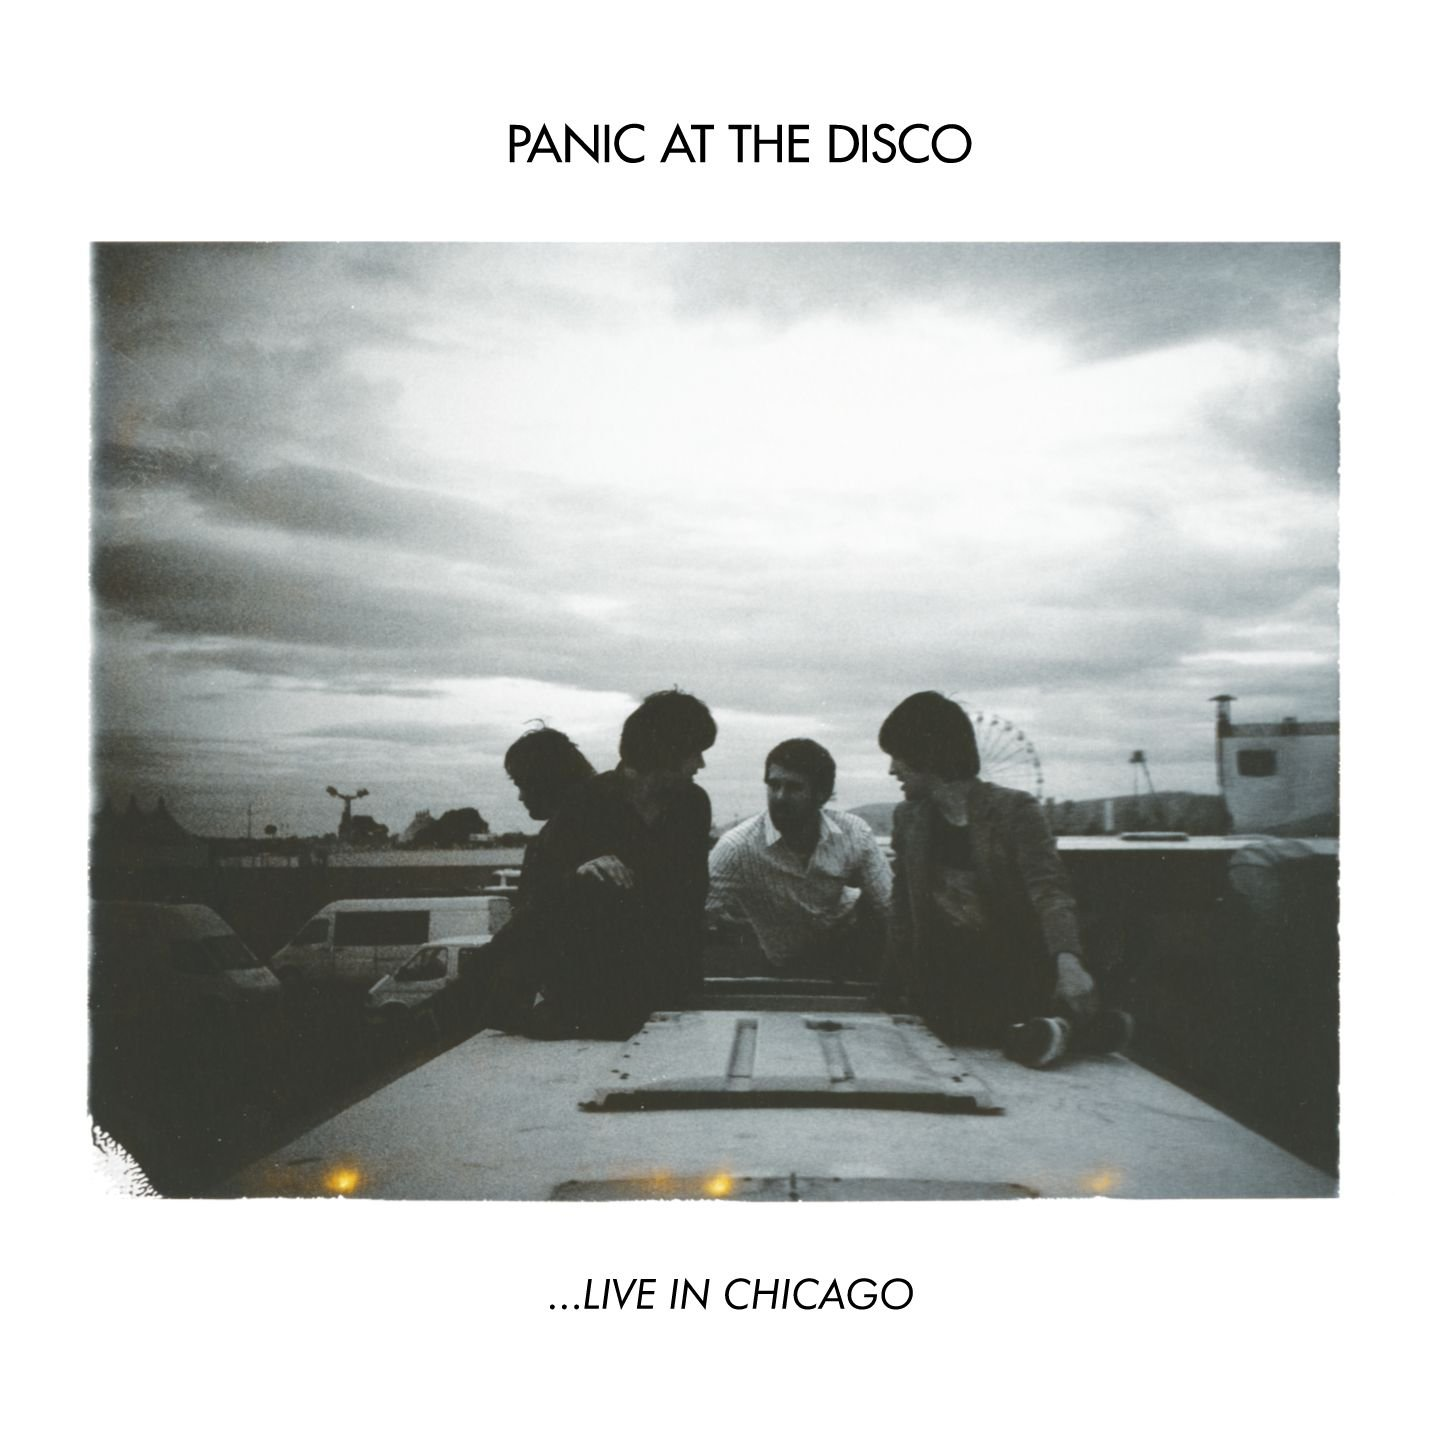 Live in Chicago (CD/DVD) by Panic at the Disco